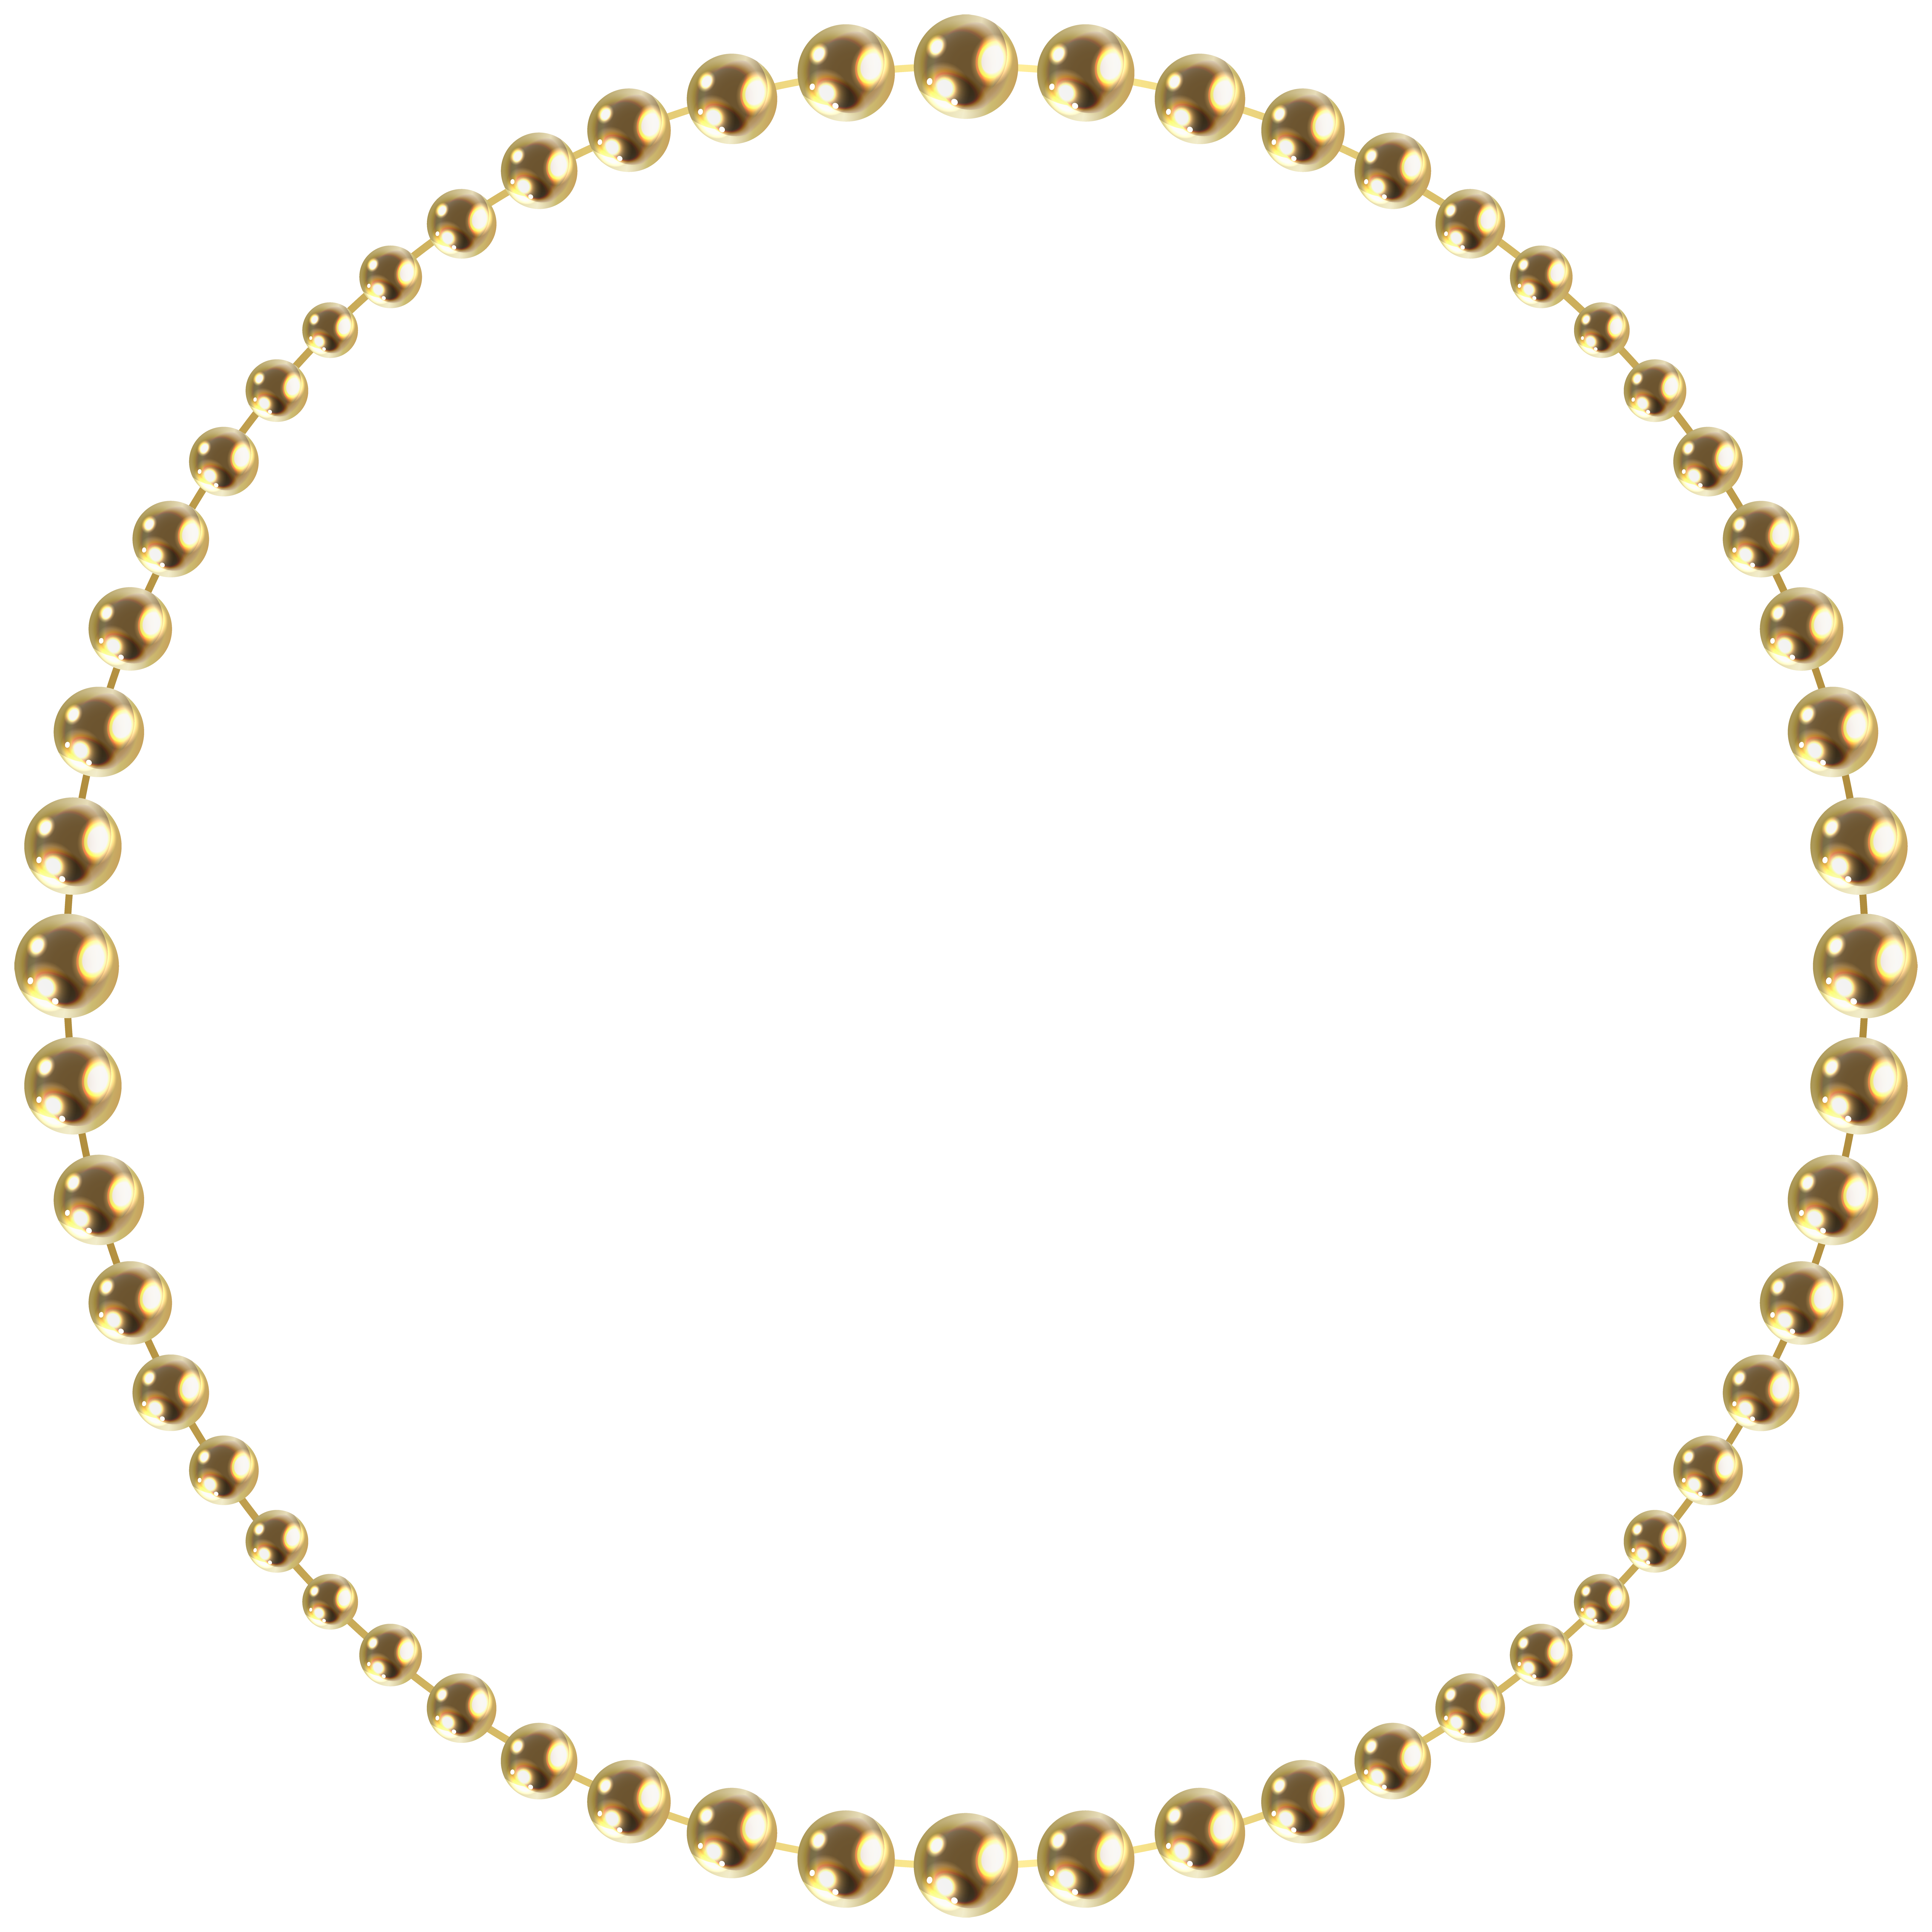 Pearl clipart gold bead, Pearl gold bead Transparent FREE.